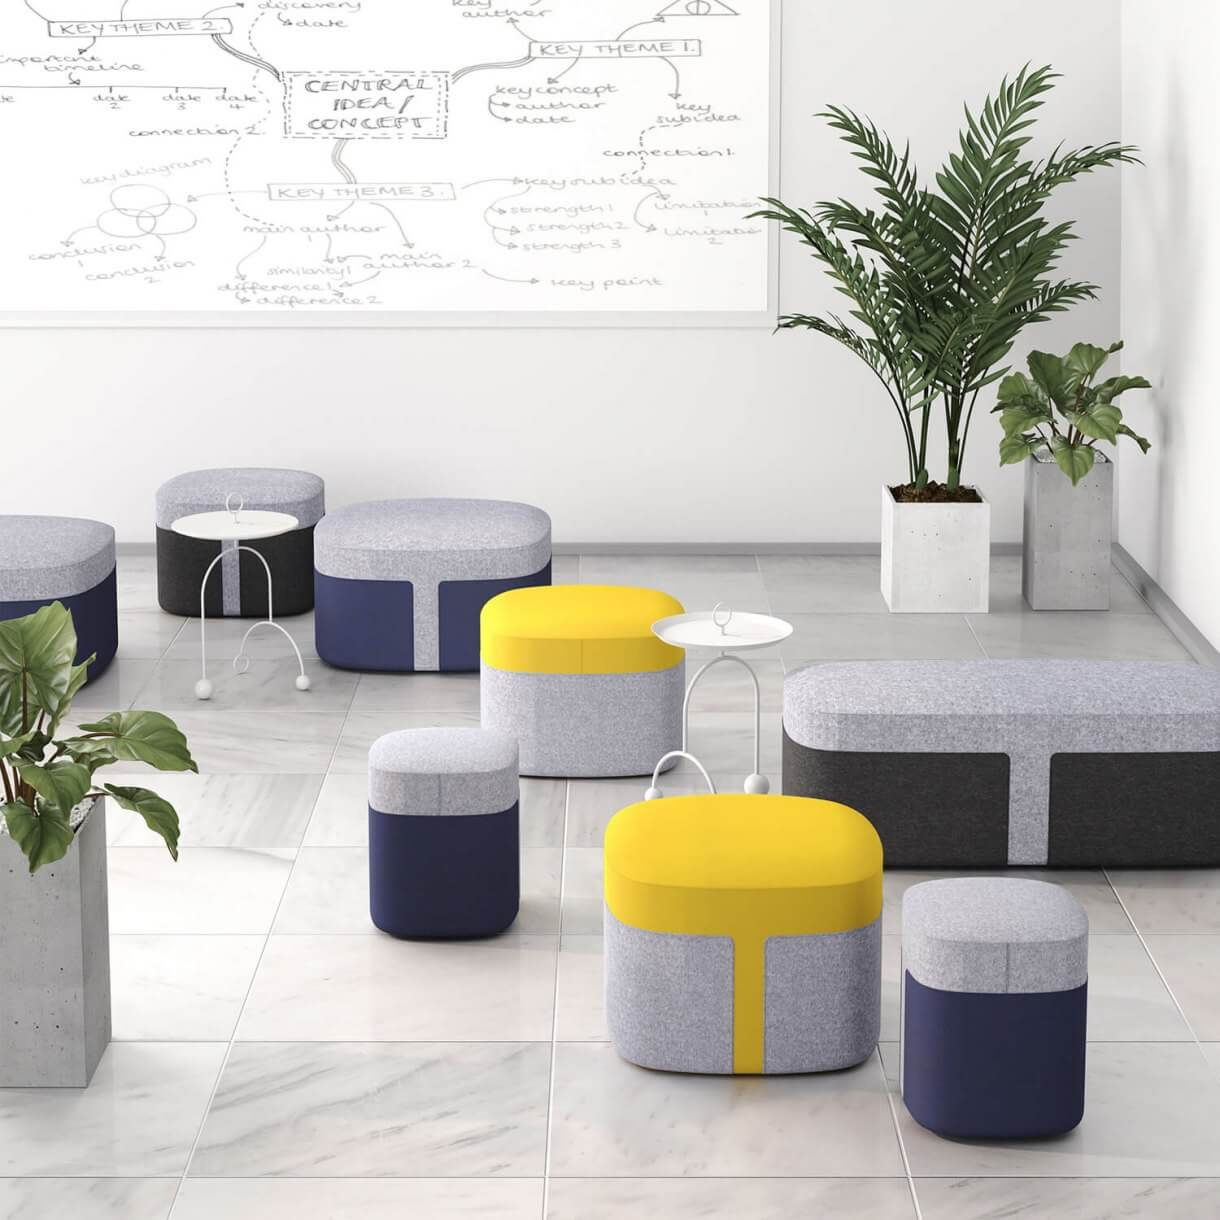 Use Stools For Easy Arrangement to Accommodate Social Distancing - Comfort Furniture